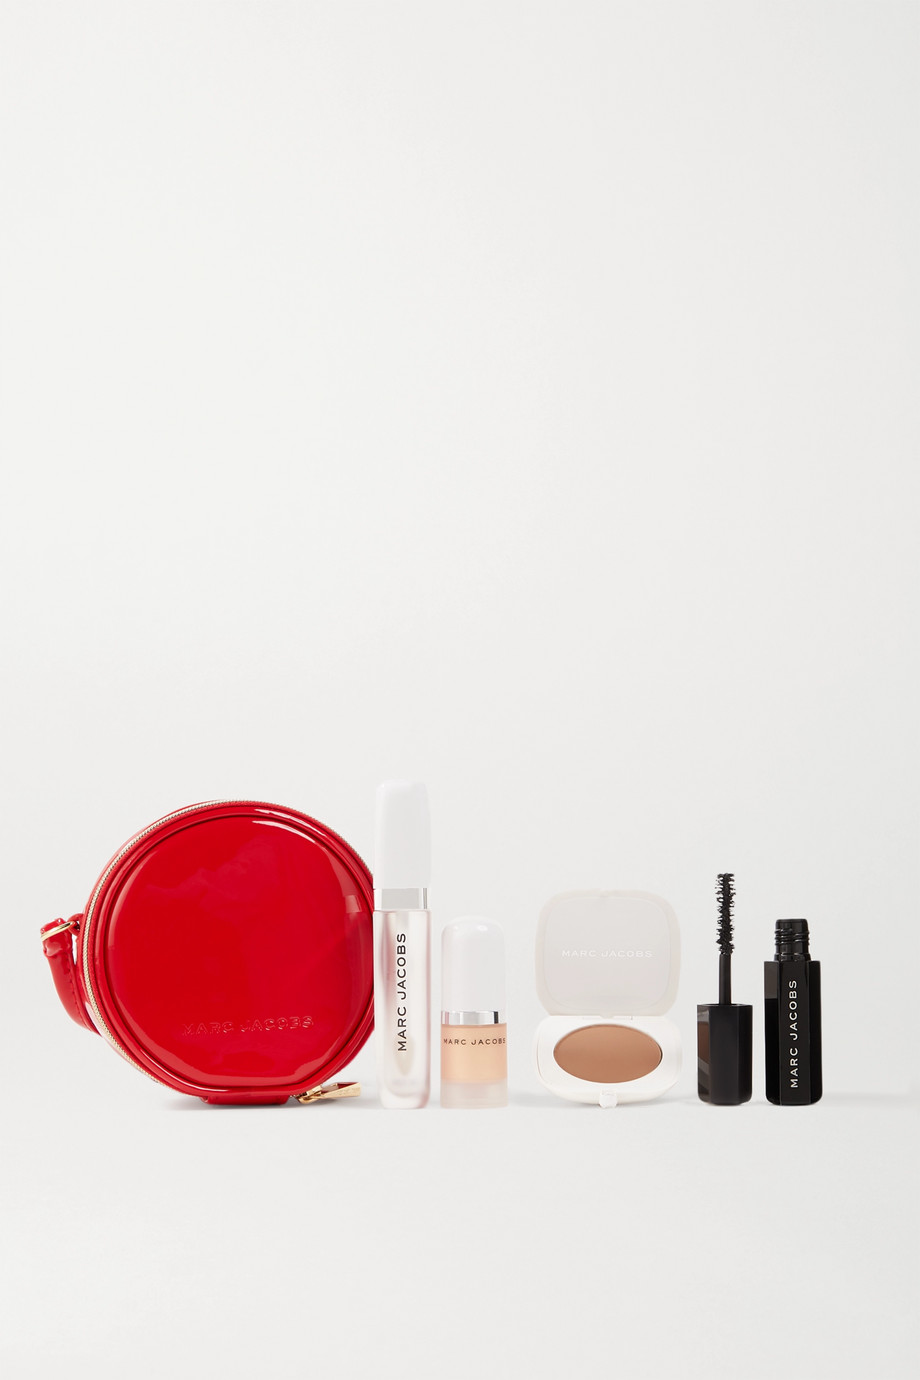 Marc Jacobs Beauty Oui Mon Cherry Gift Set